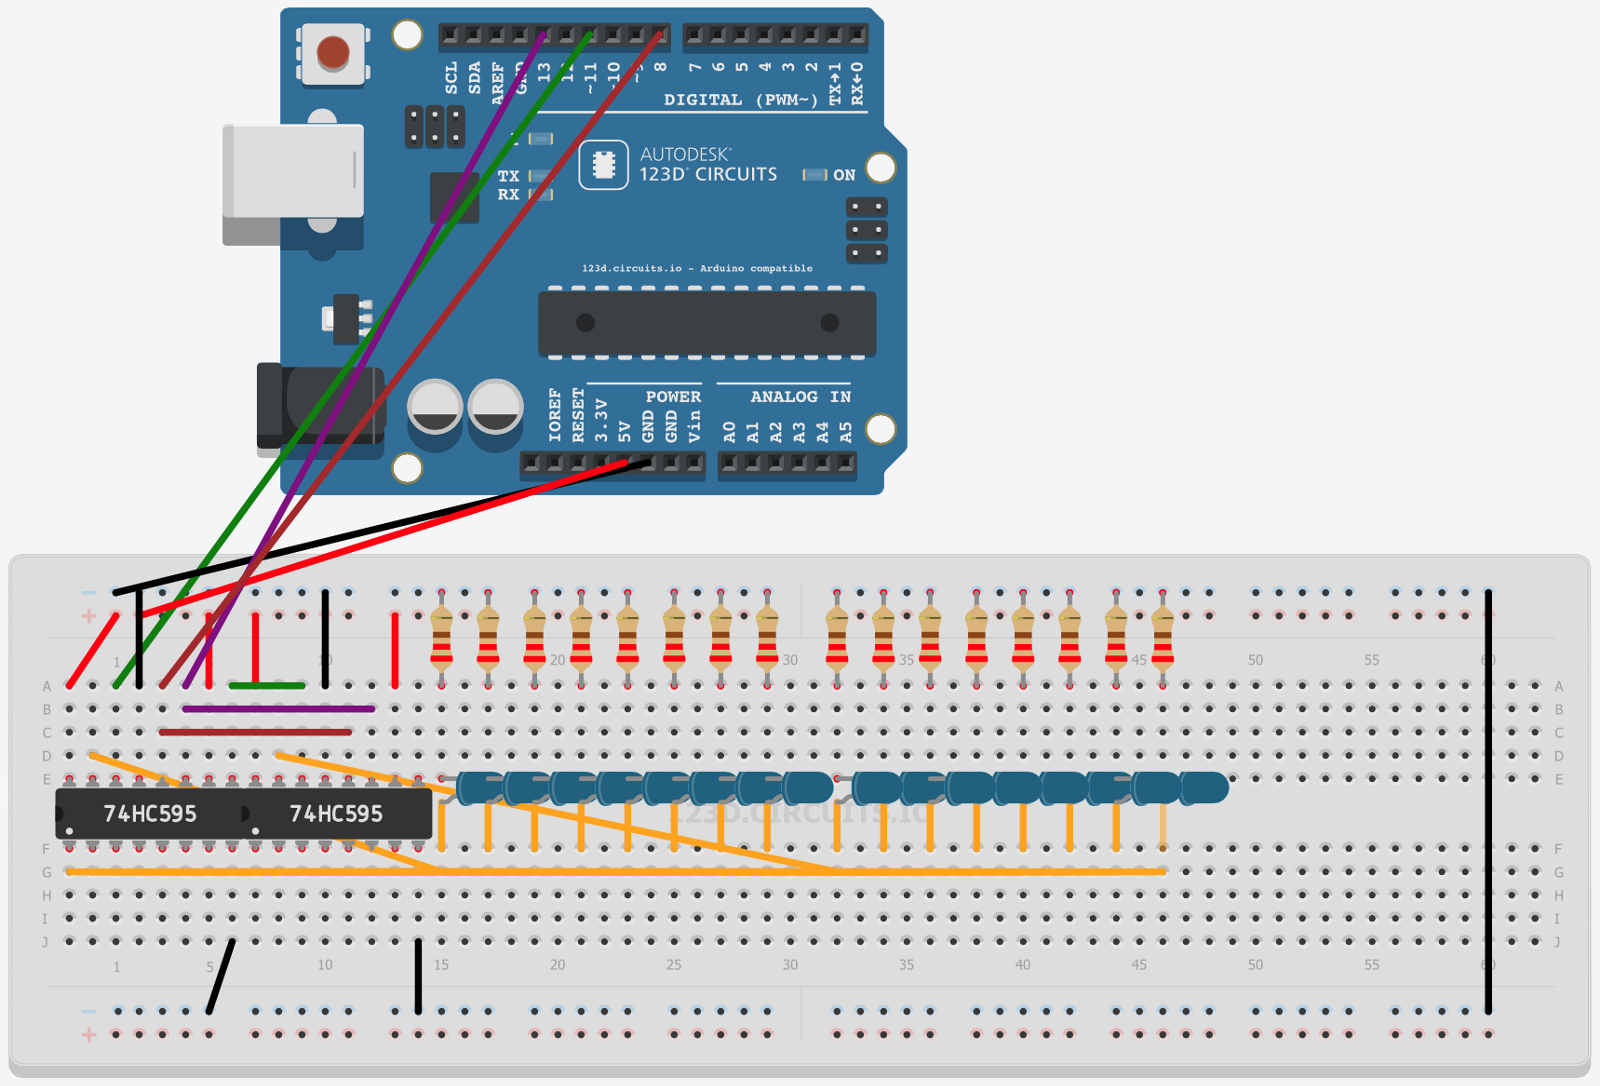 Driving 16 Leds Using Only Three Pins Of An Arduino Led Component Wiring Diagram Full Schematic Available On Http 123dcircuitsio Circuits 634943 Two Shift Registers